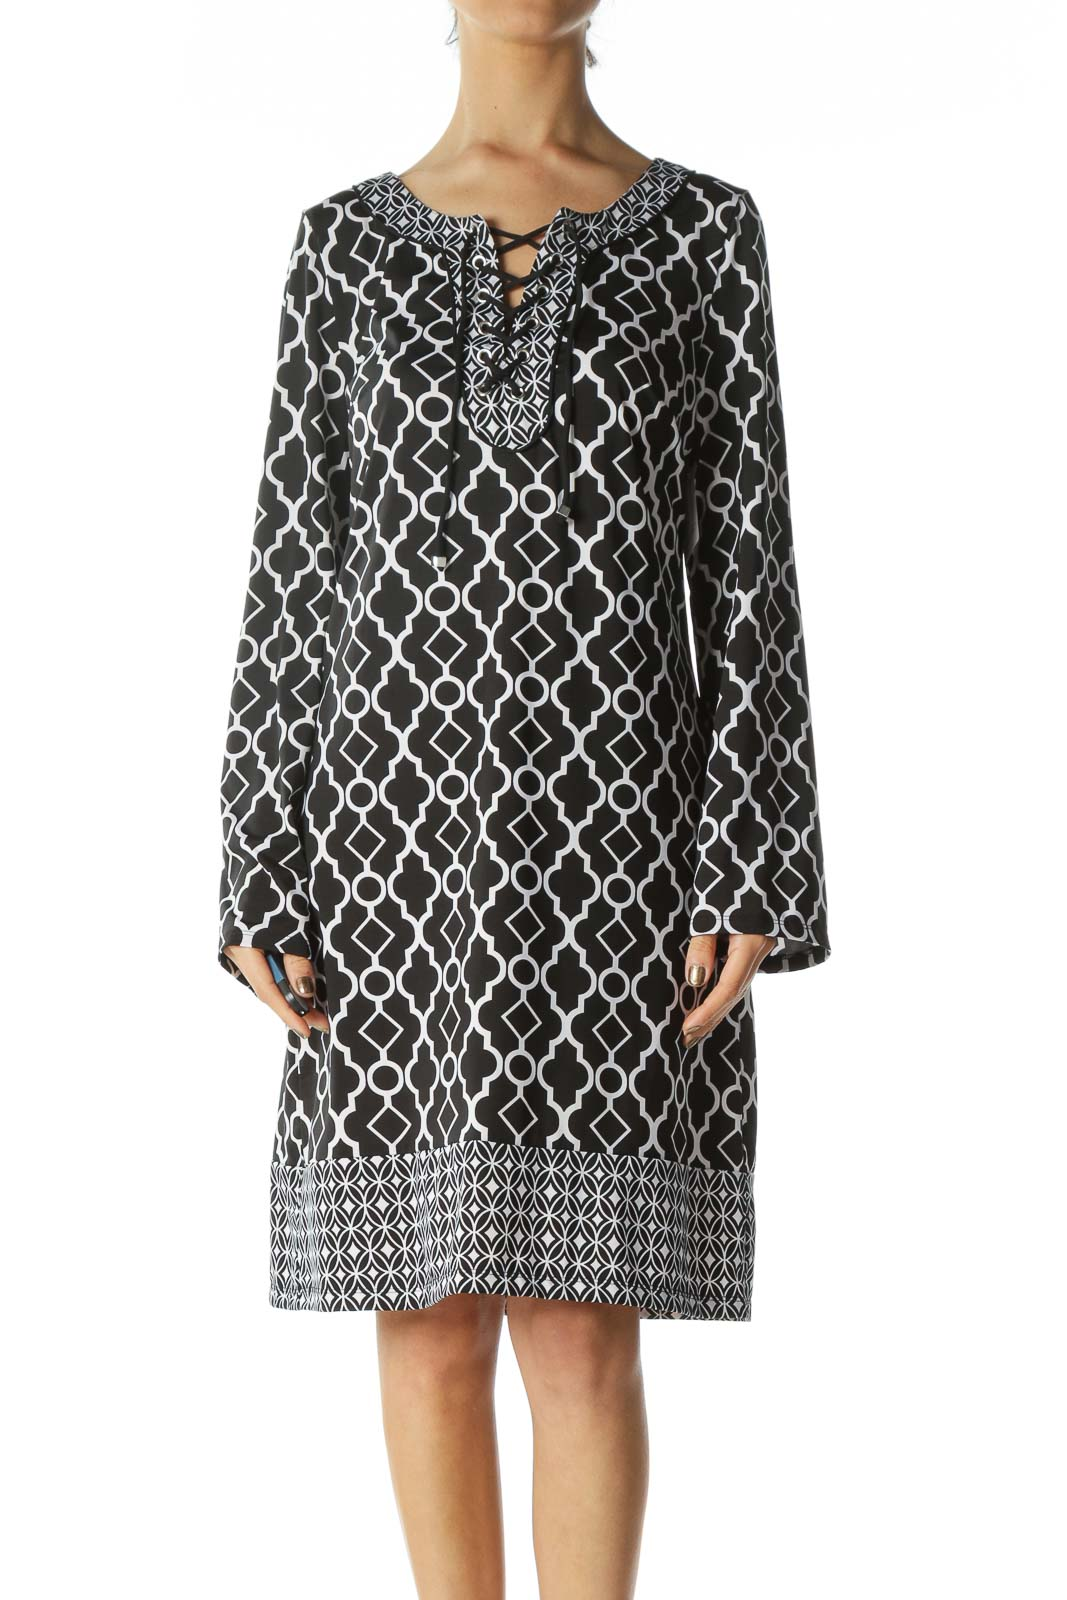 Black and White Patterned Dress  Front